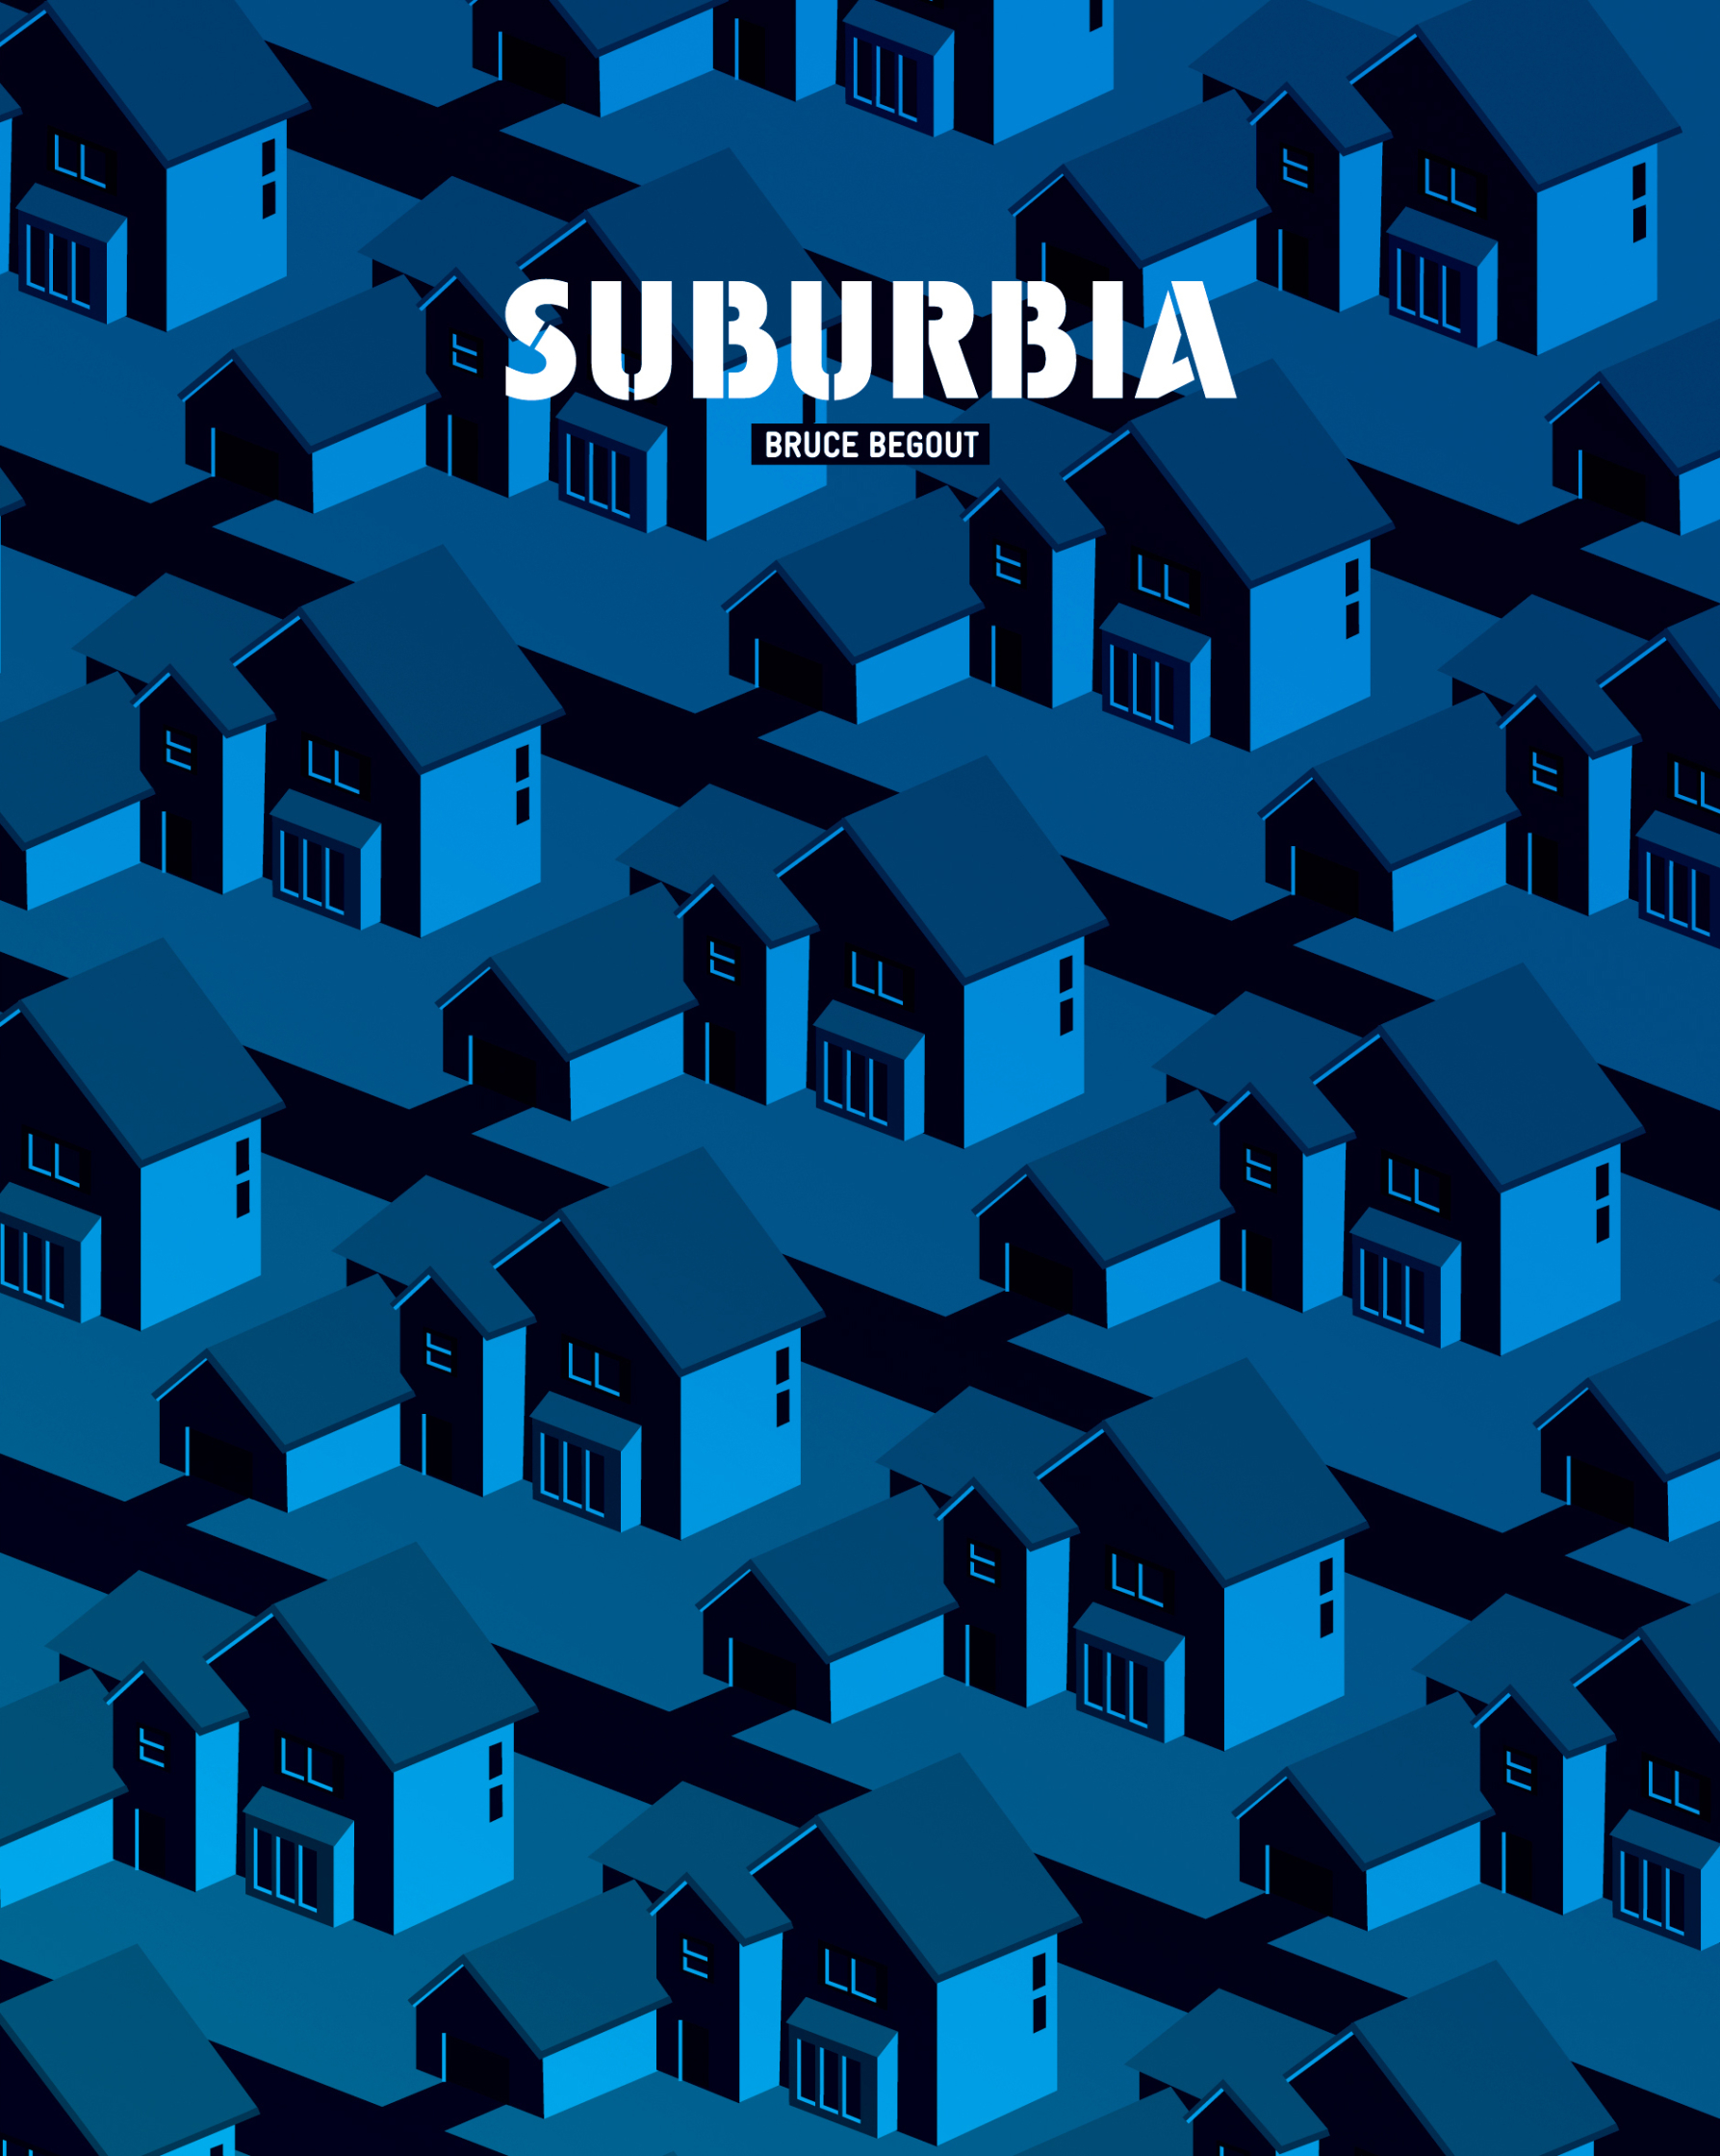 Suburbia by Bruce Begout